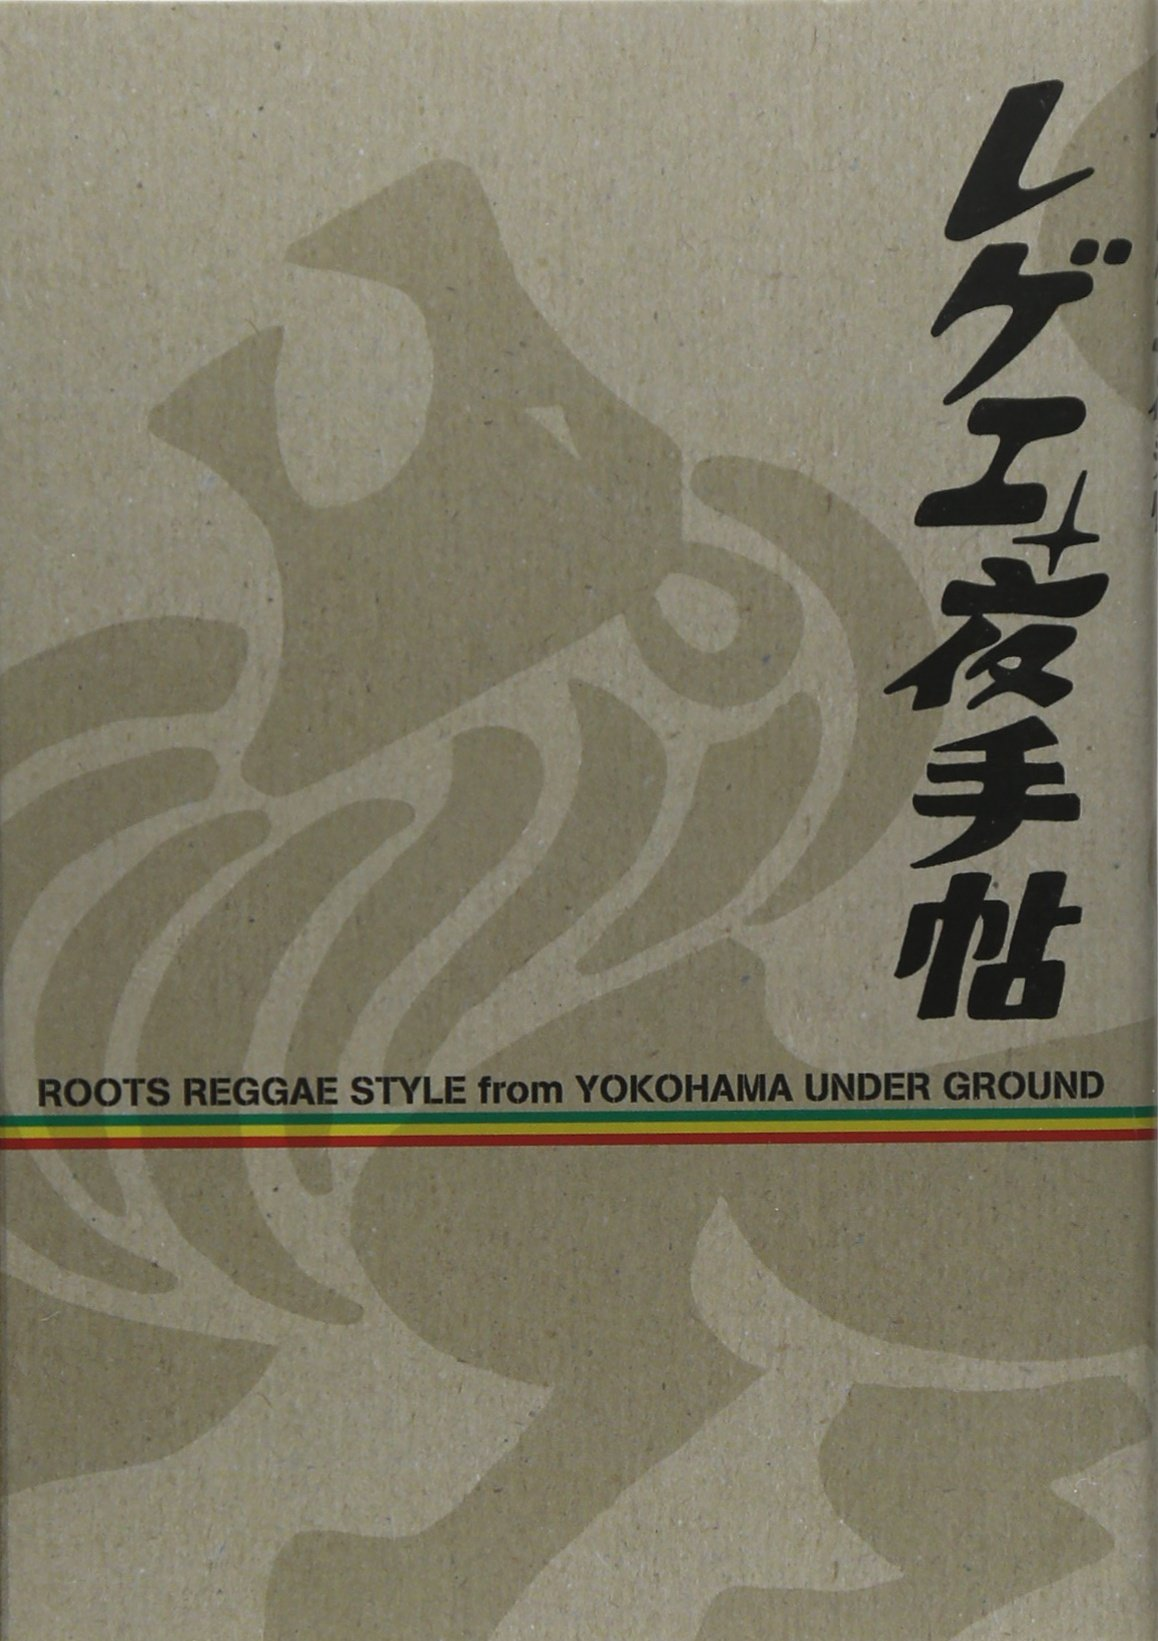 レゲエ夜手帖(ROOTS REGGAE STYLEE FROM YOKOHAMA UNDER GROUND)[サウンドシステム「PRESSURE HIGH」MIX CD付き!]